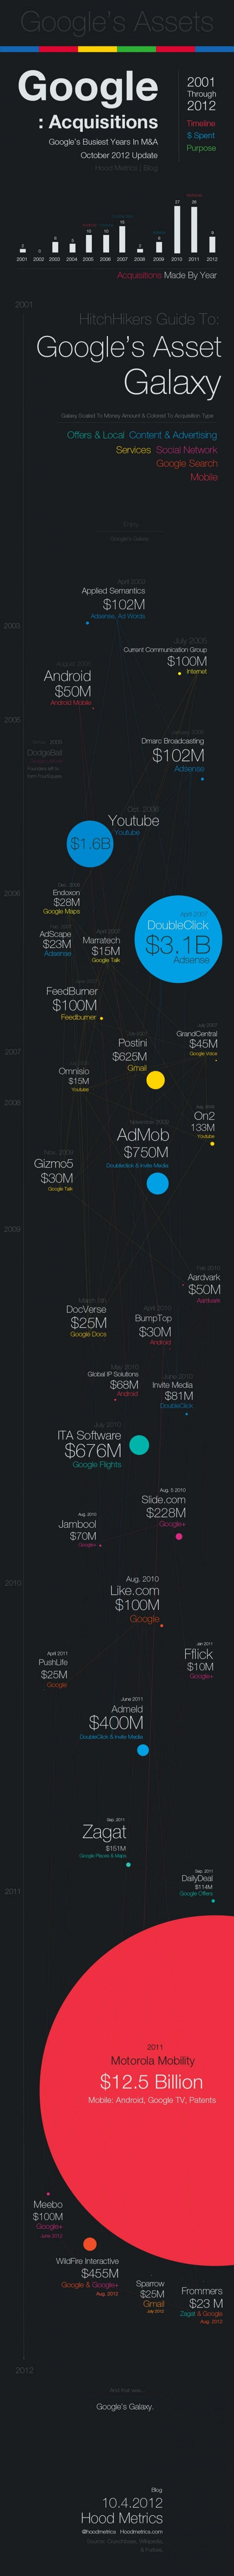 Hitchhikers Guide To Google's Assets #Infographic